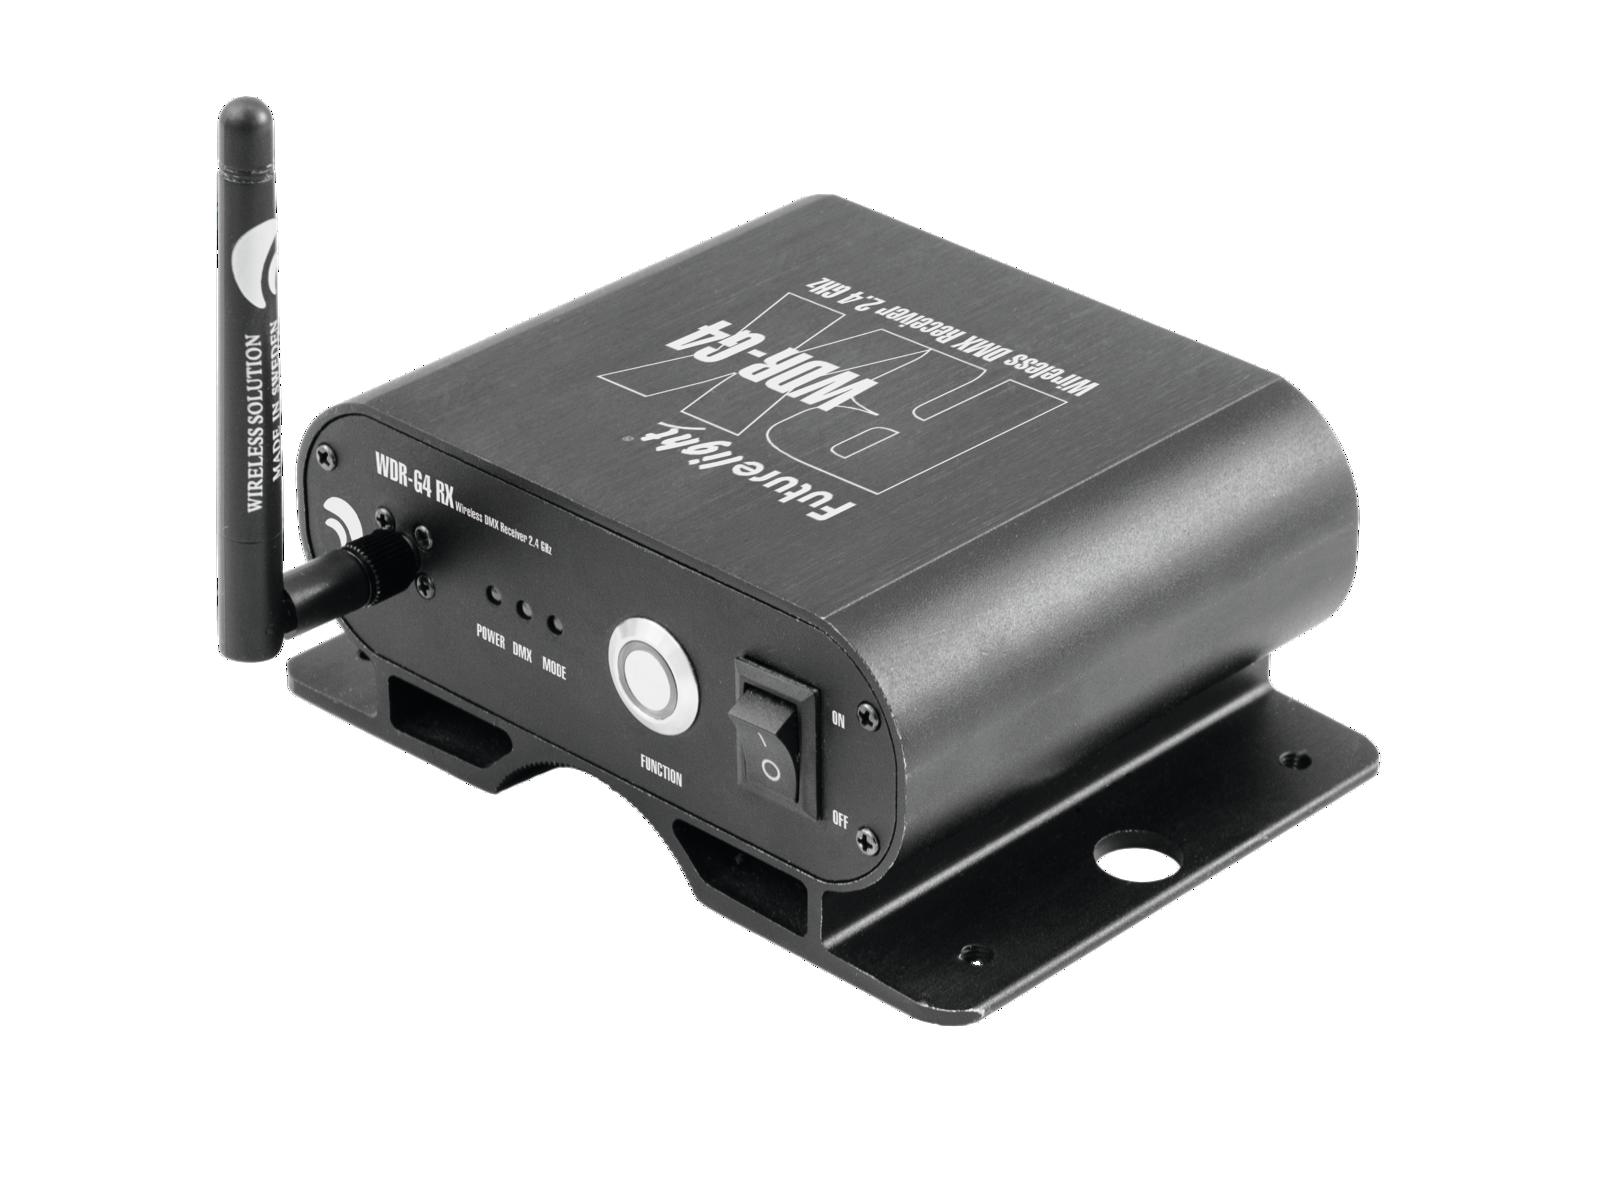 FUTURELIGHT WDR-G4 RX Wireless-DMX-Ricevitore